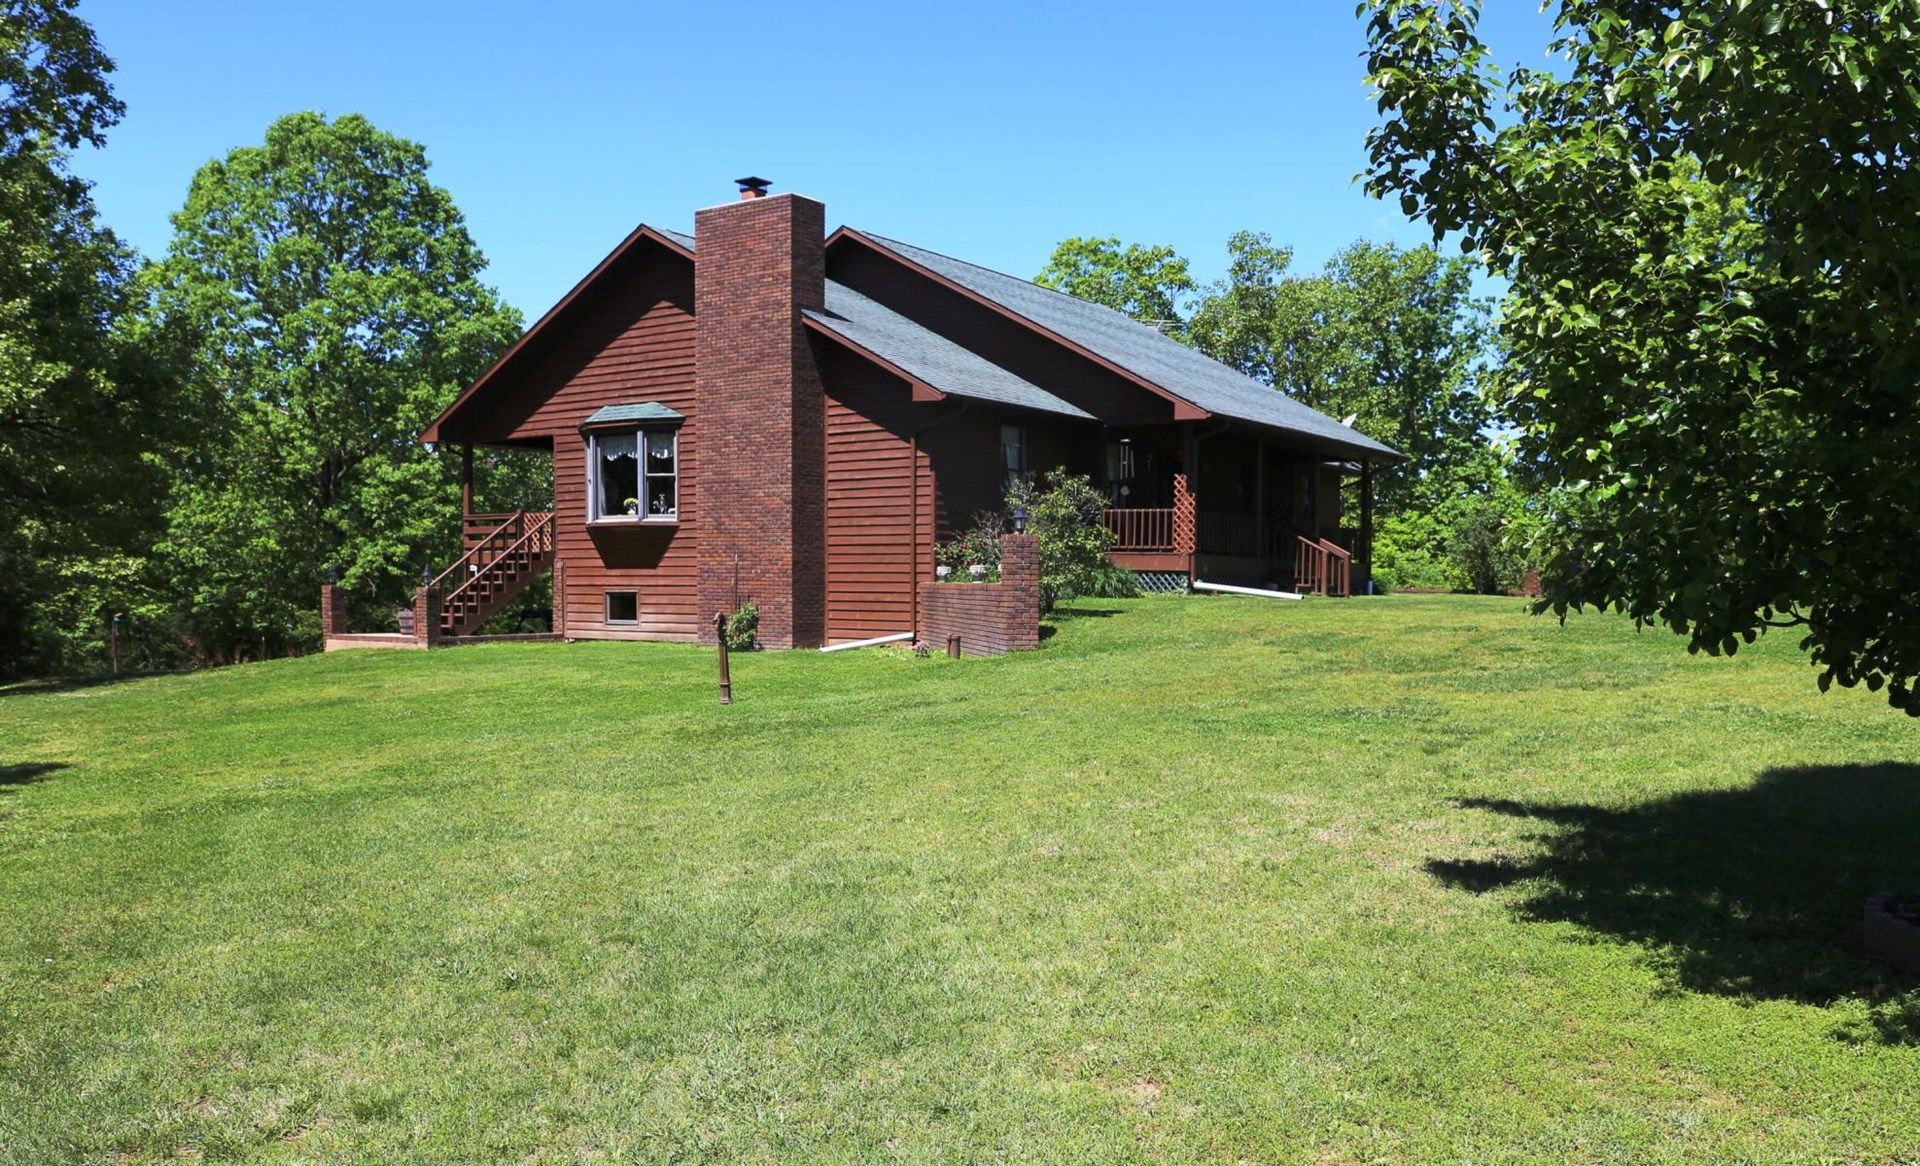 Equine Property and 4-5 Bedroom Home in the Missouri Ozarks